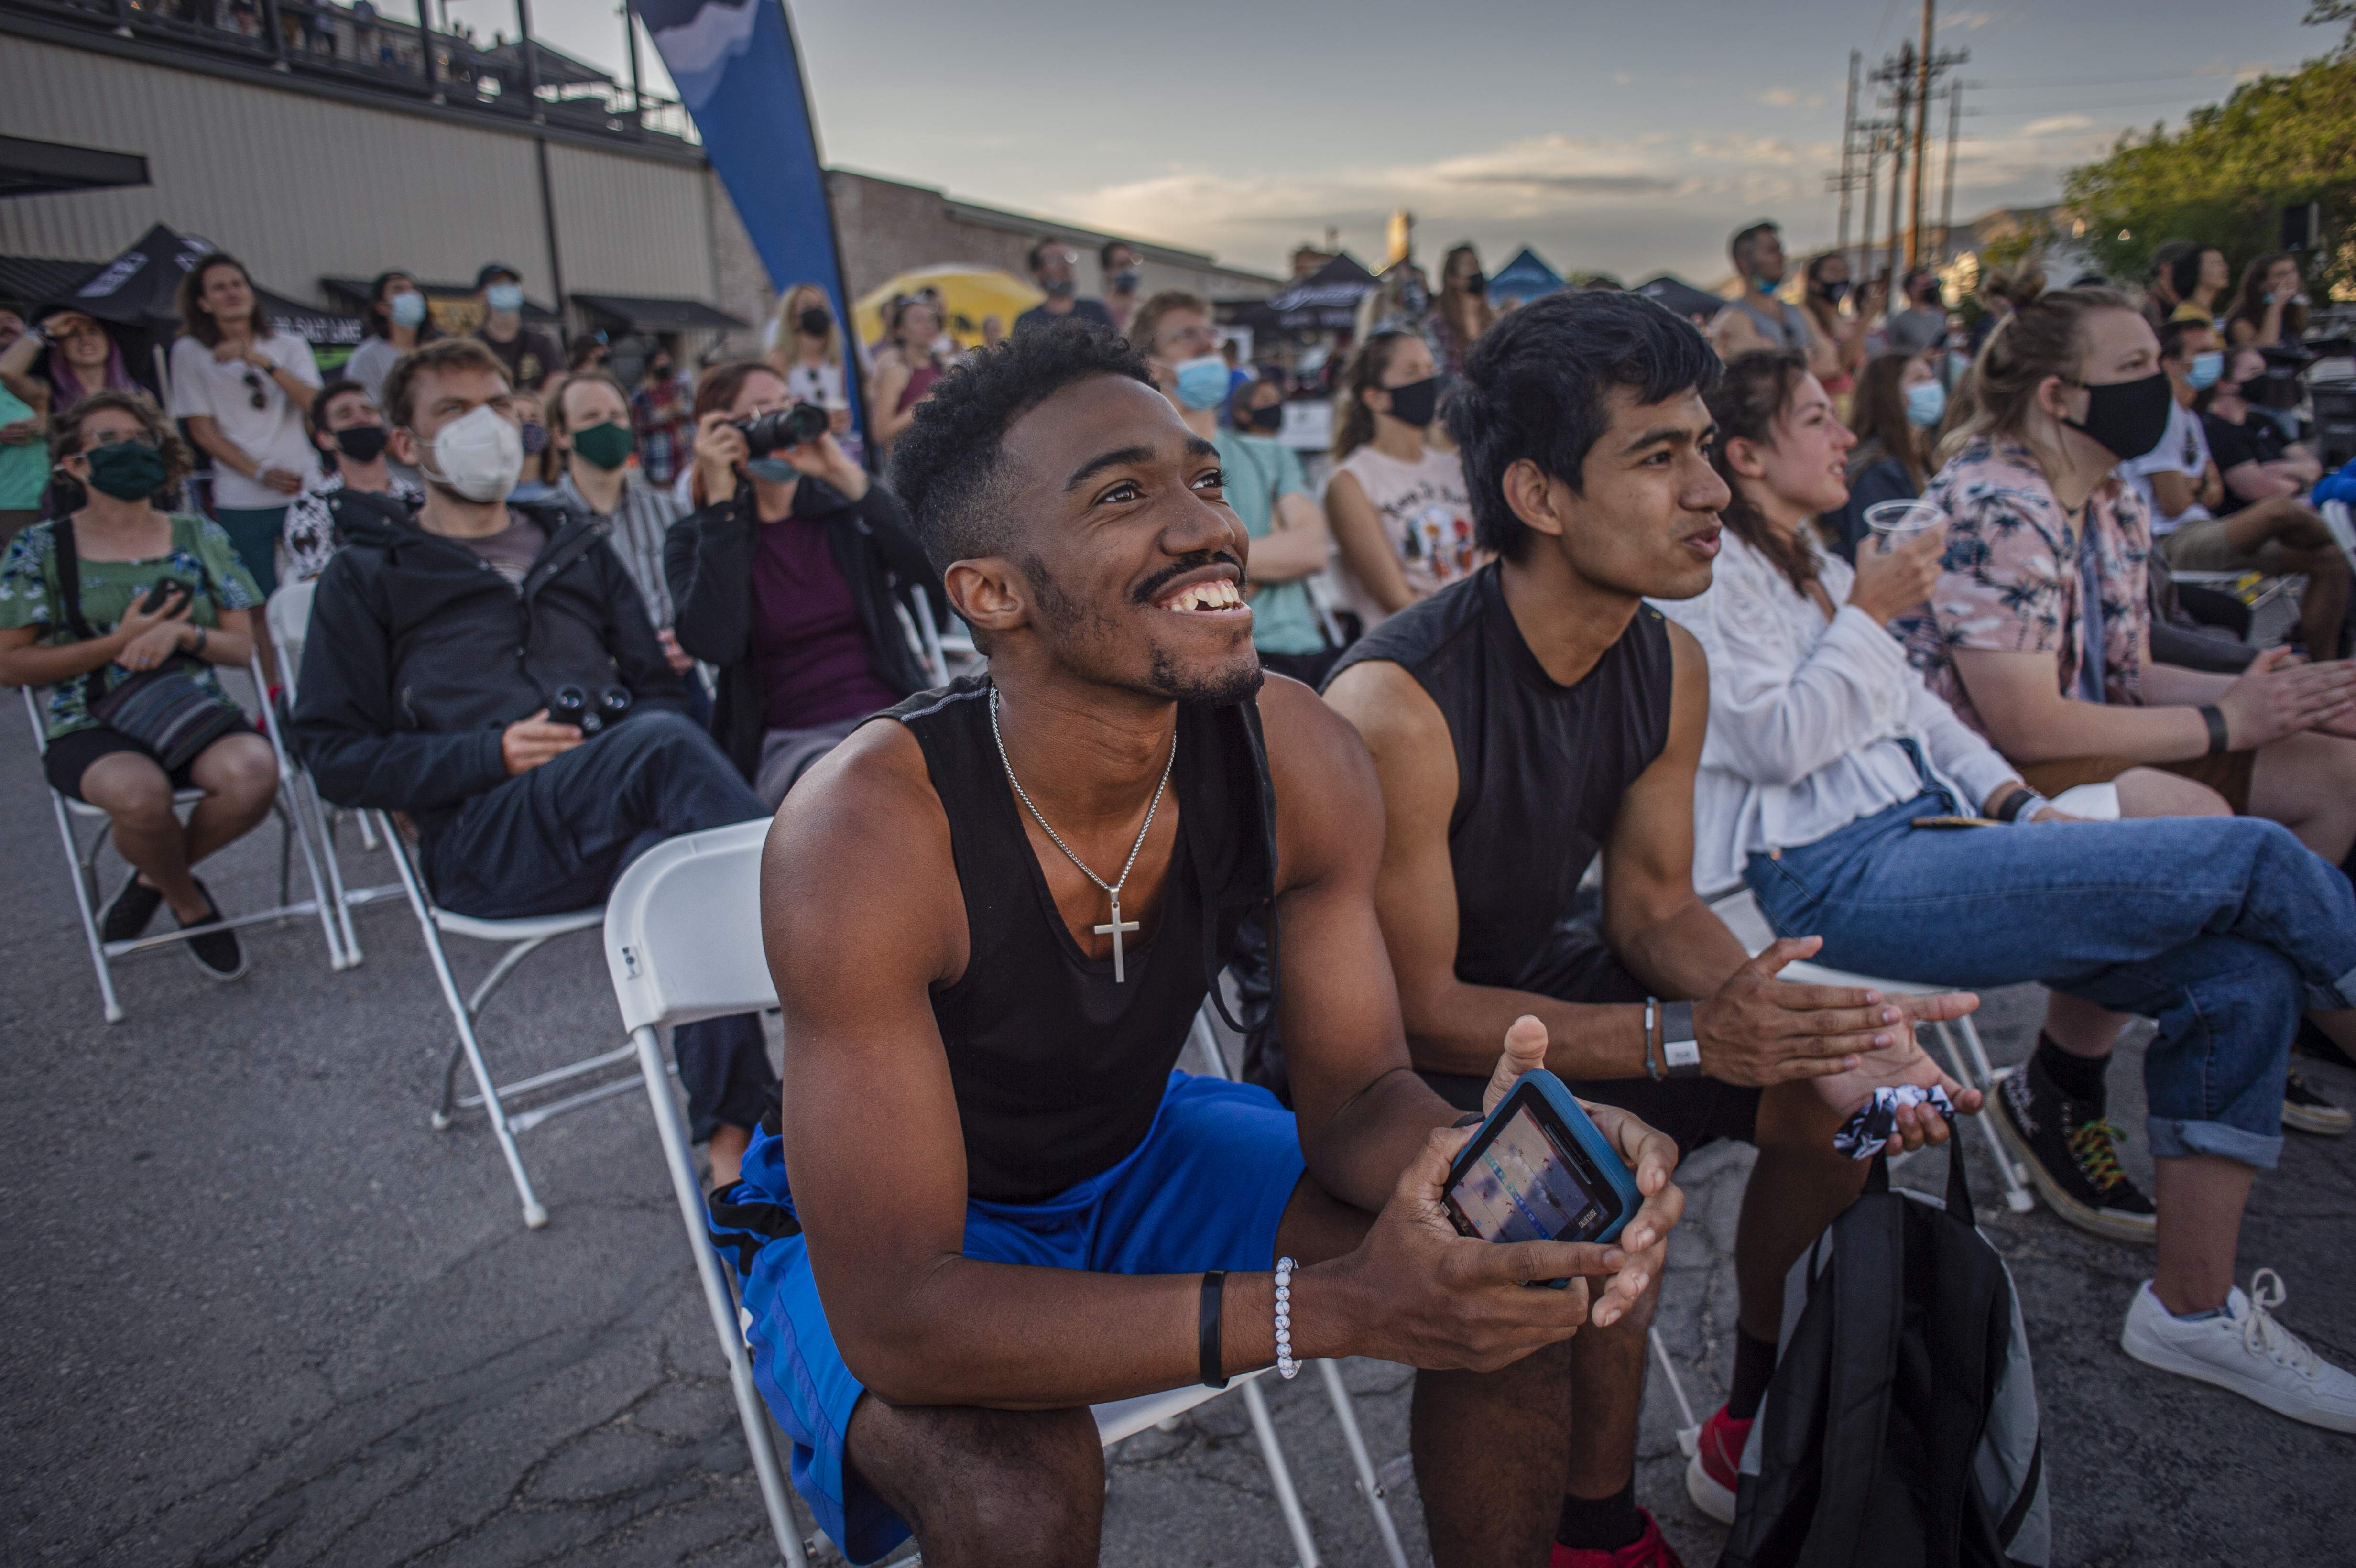 Attendee watches IFSC World Cup Climbing Event